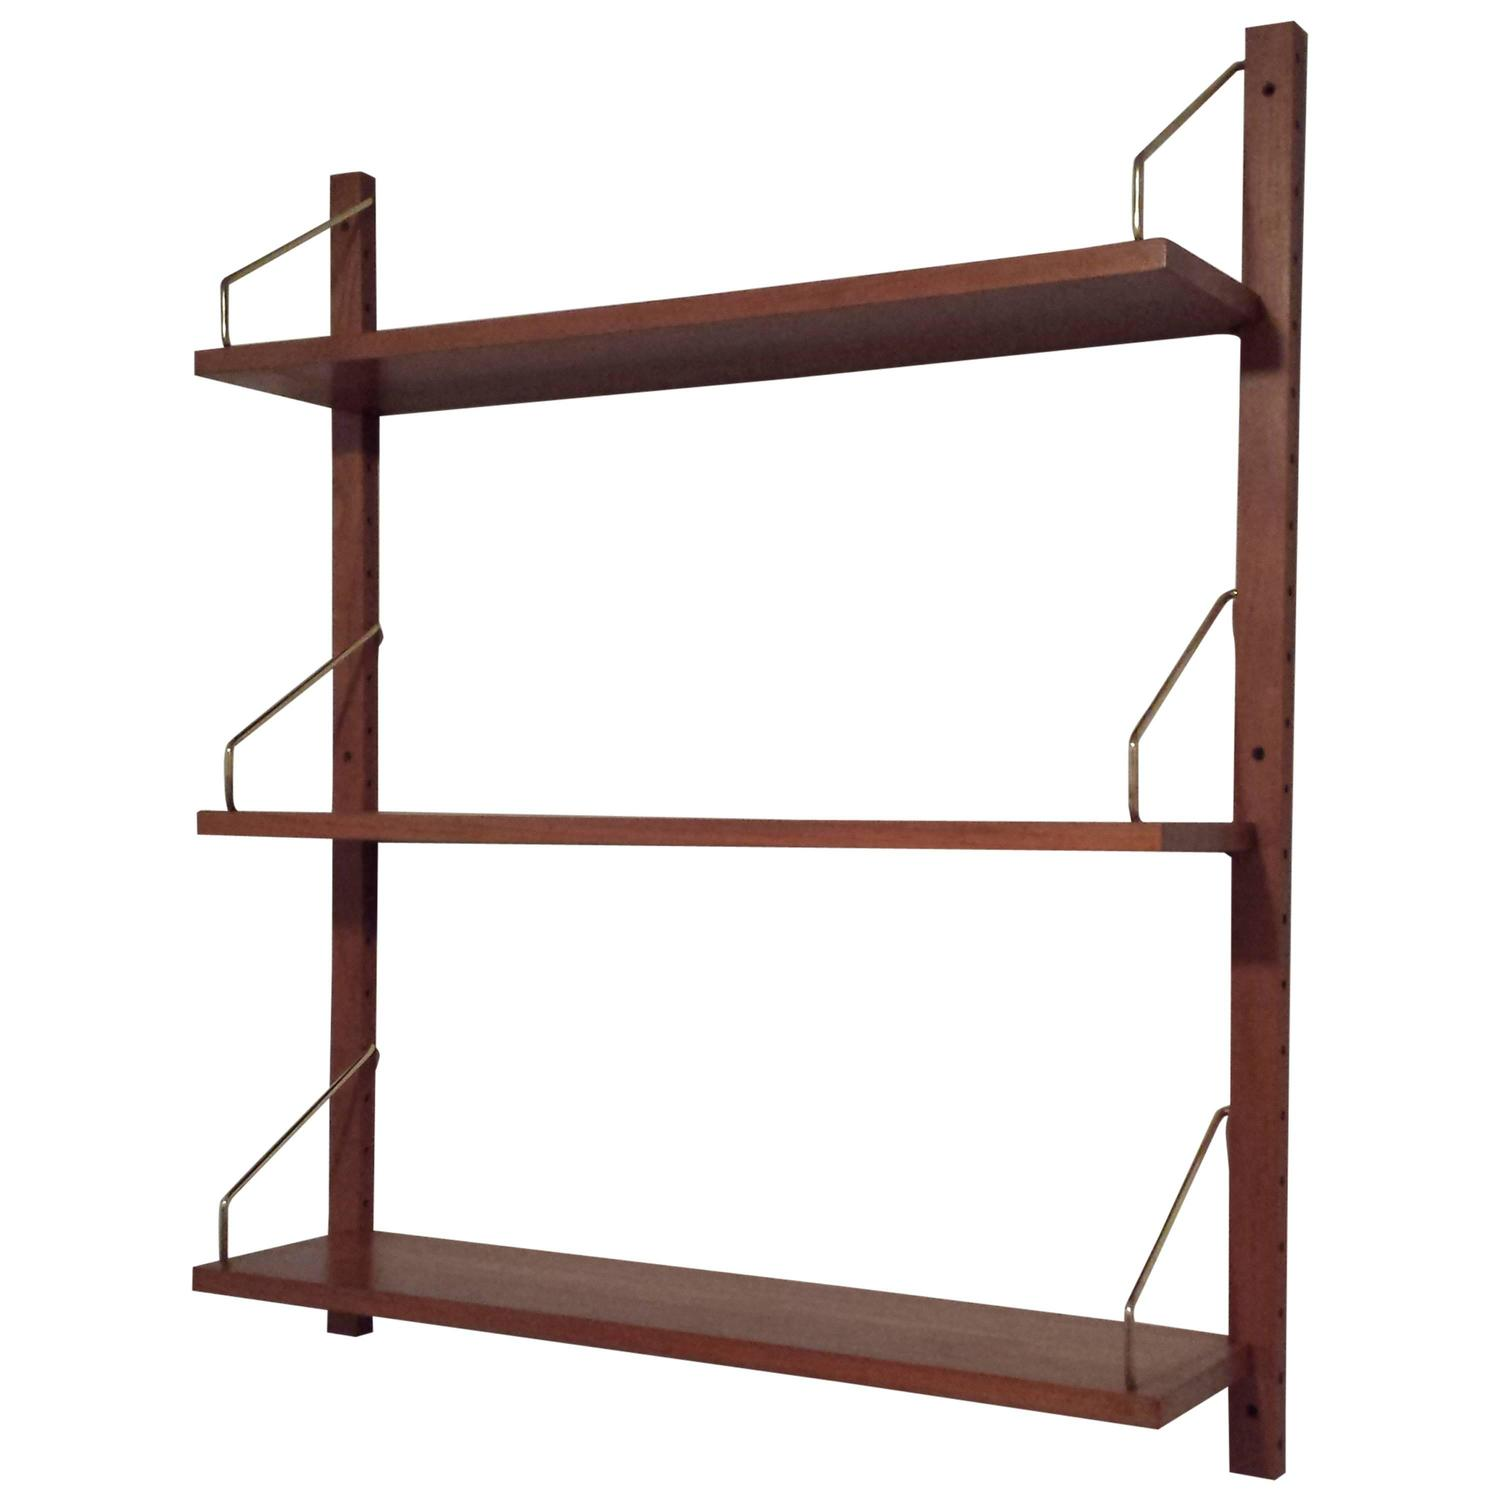 Adjustable Wall Shelf System Mid Century Danish Solid Teak Adjustable Three Shelf Wall